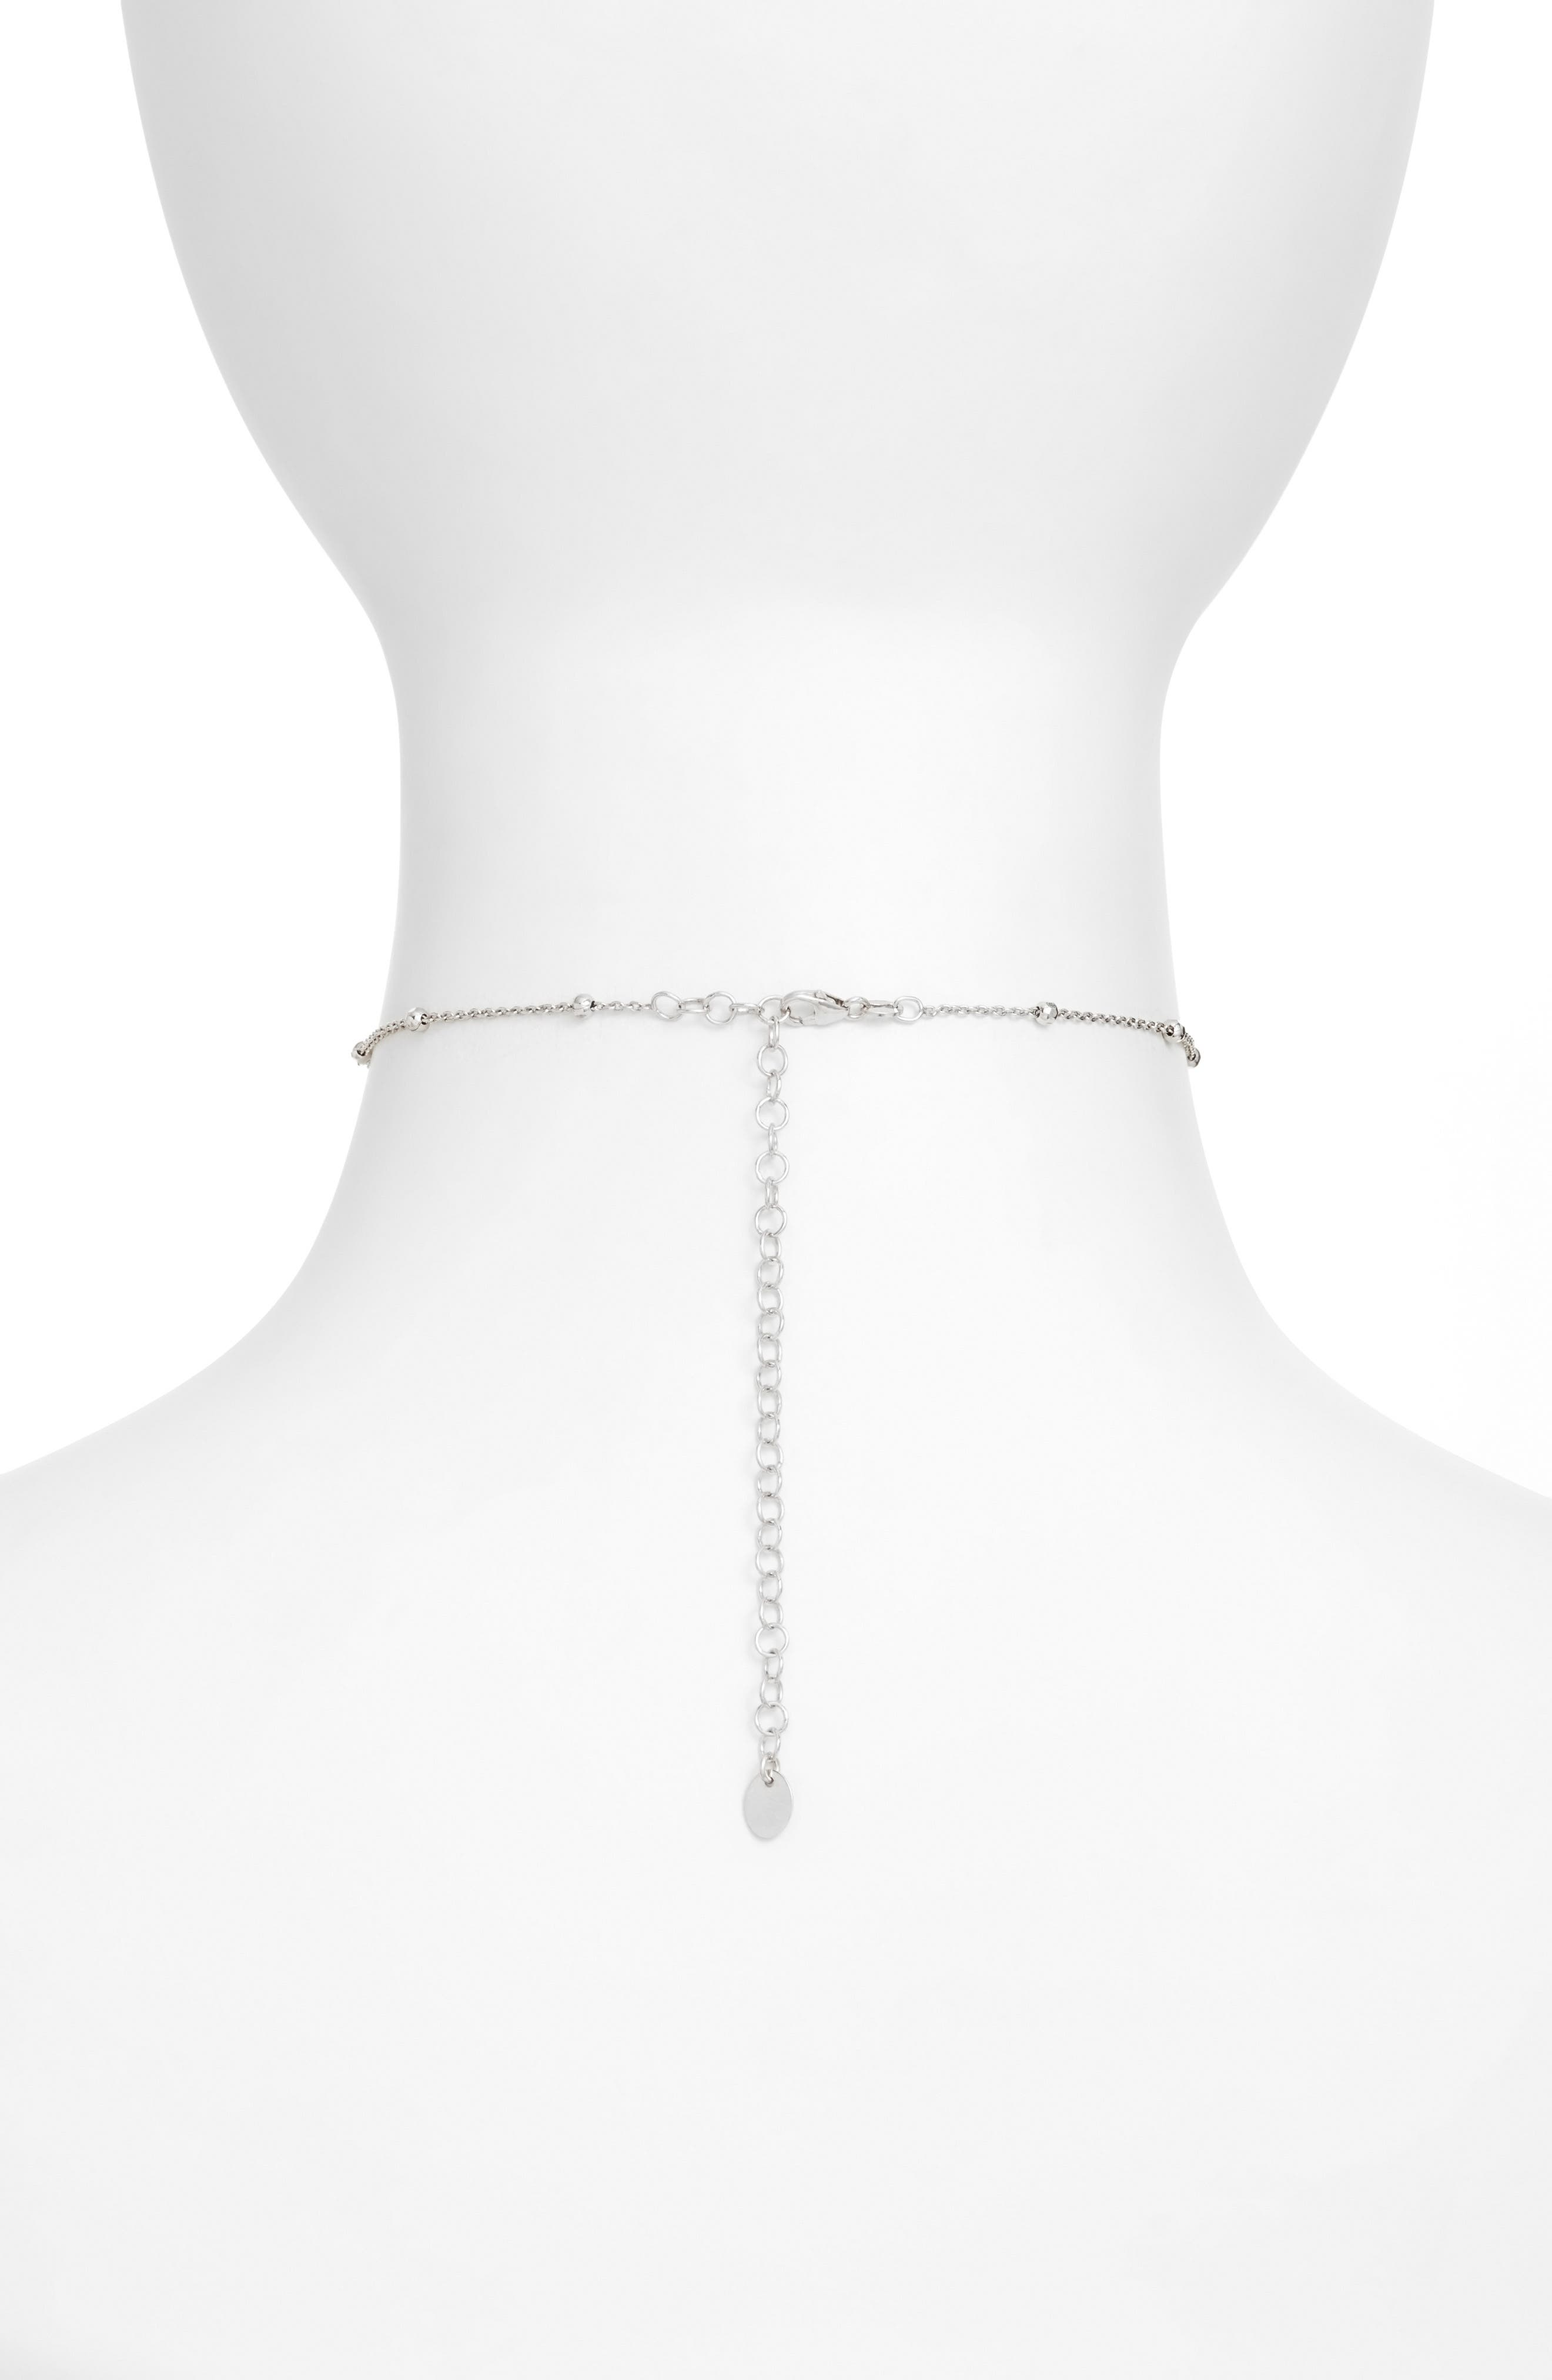 Choker Necklace,                             Alternate thumbnail 2, color,                             SILVER